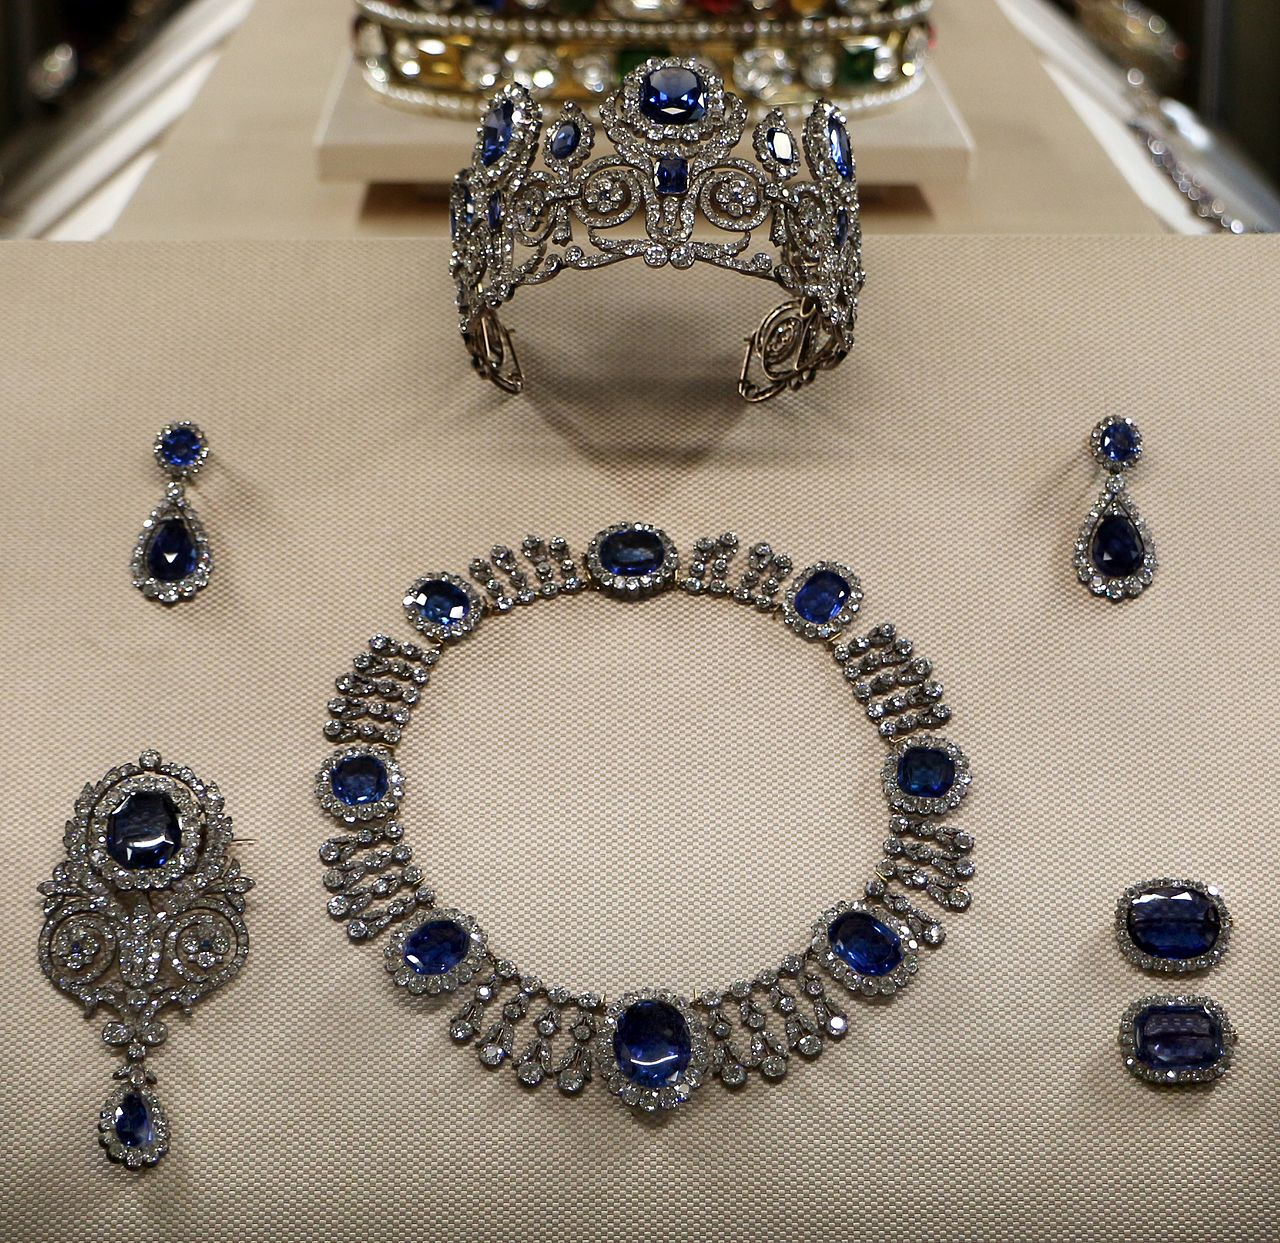 The Sapphire Parure of Queen Maria Amélie of France